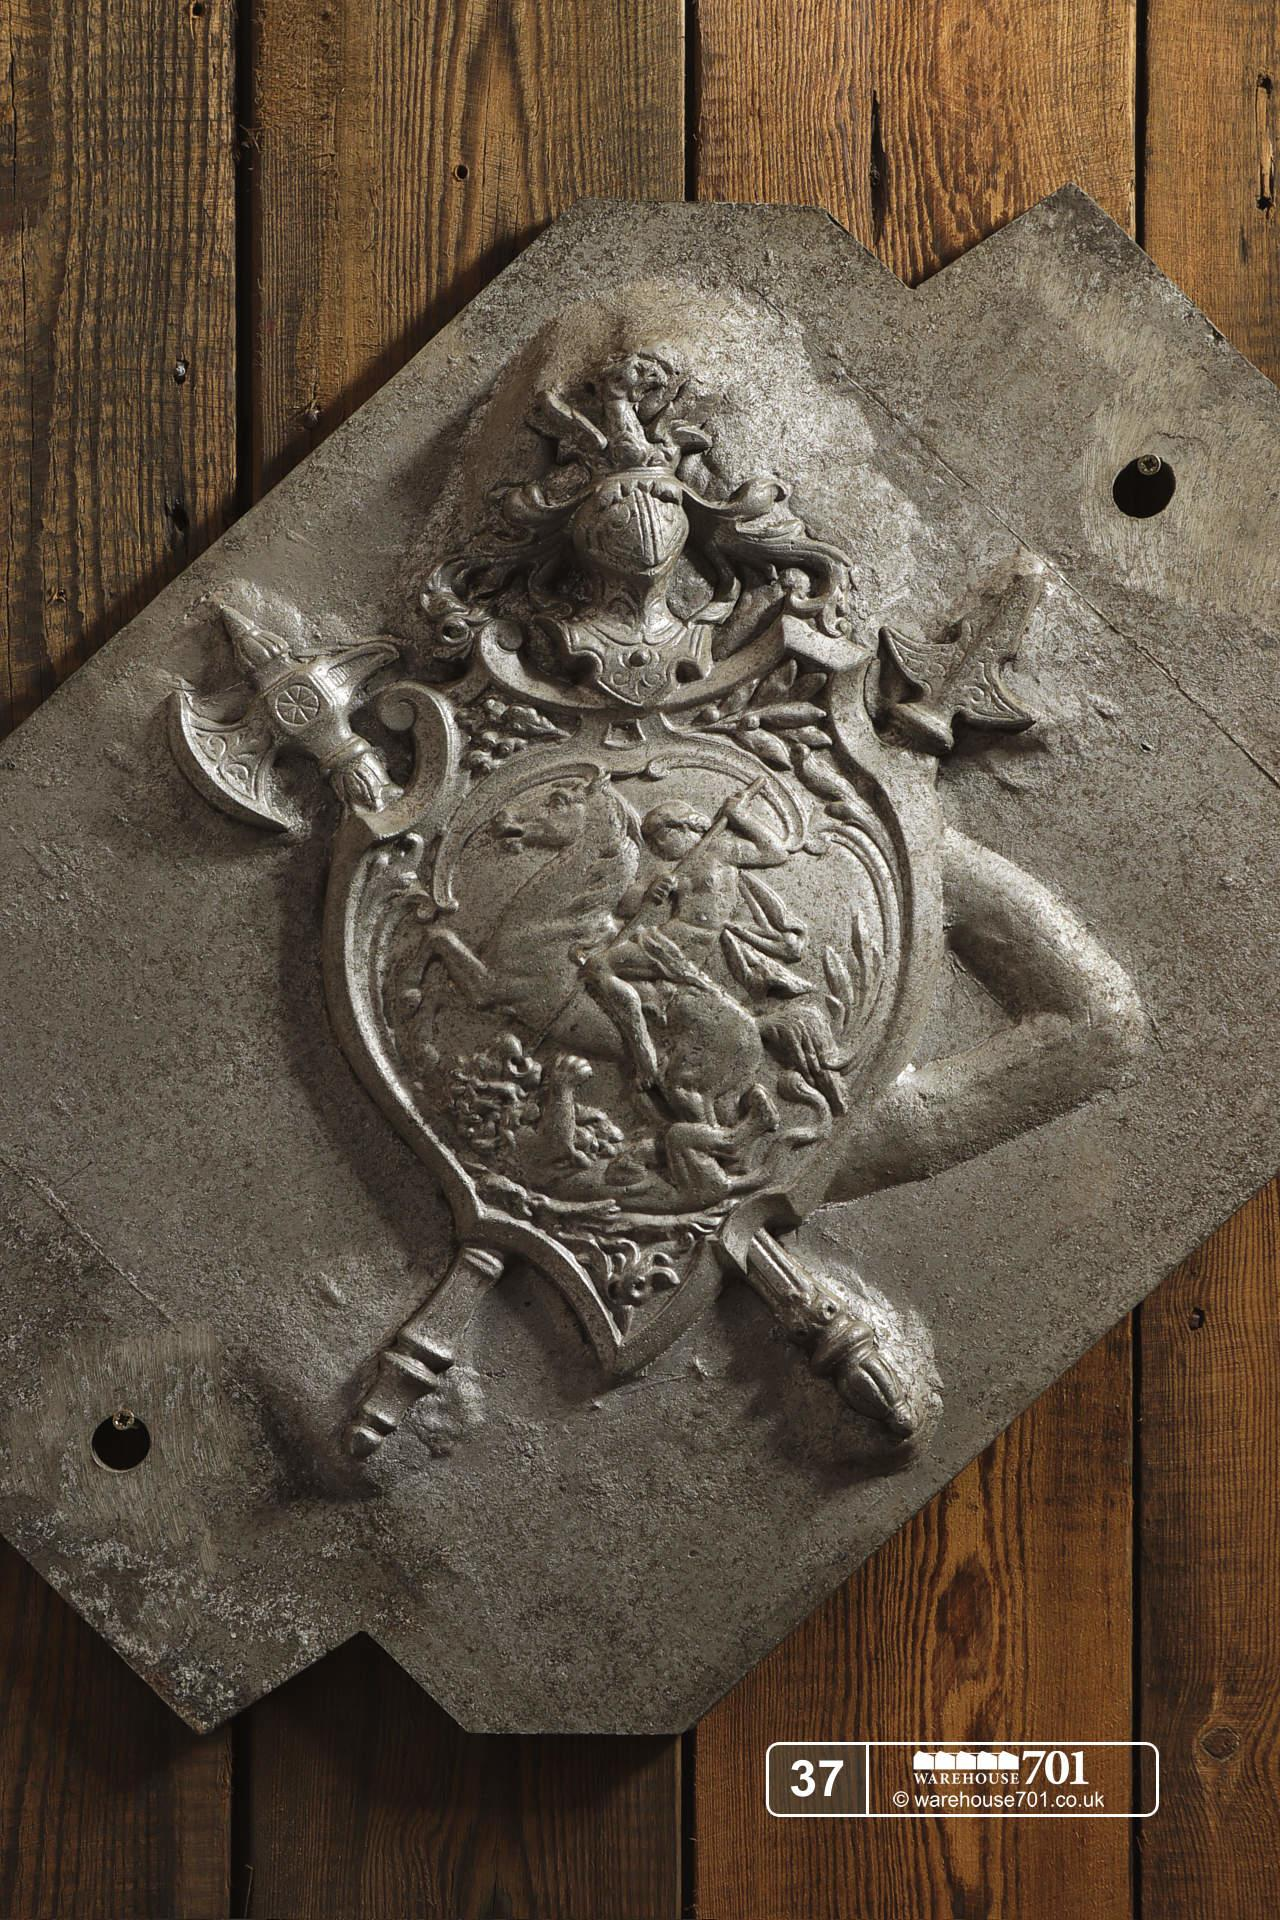 Aluminium Foundry Castings of Heraldic Crests (No's 35, 36, 37) for Shop, Retail and Home Display #9